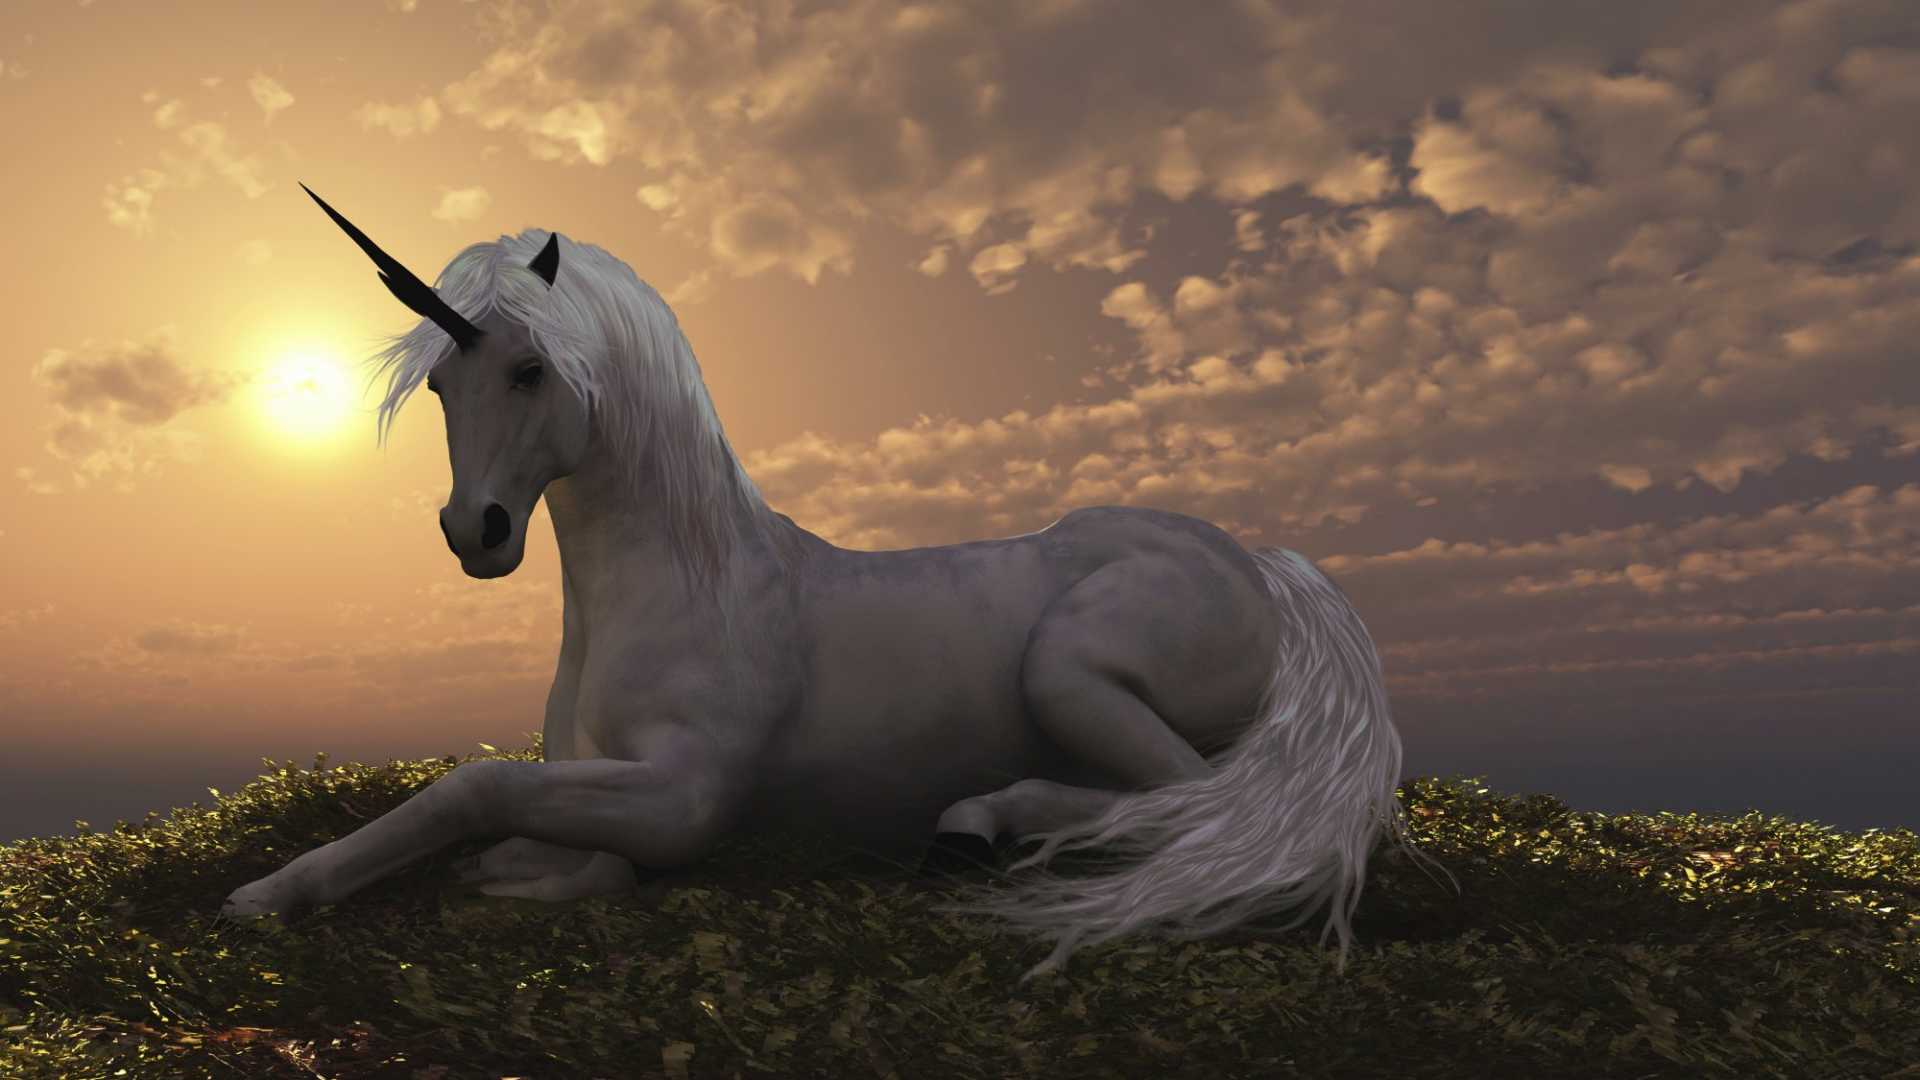 This Company Says It Has Identified the Next 10 Unicorn Startups